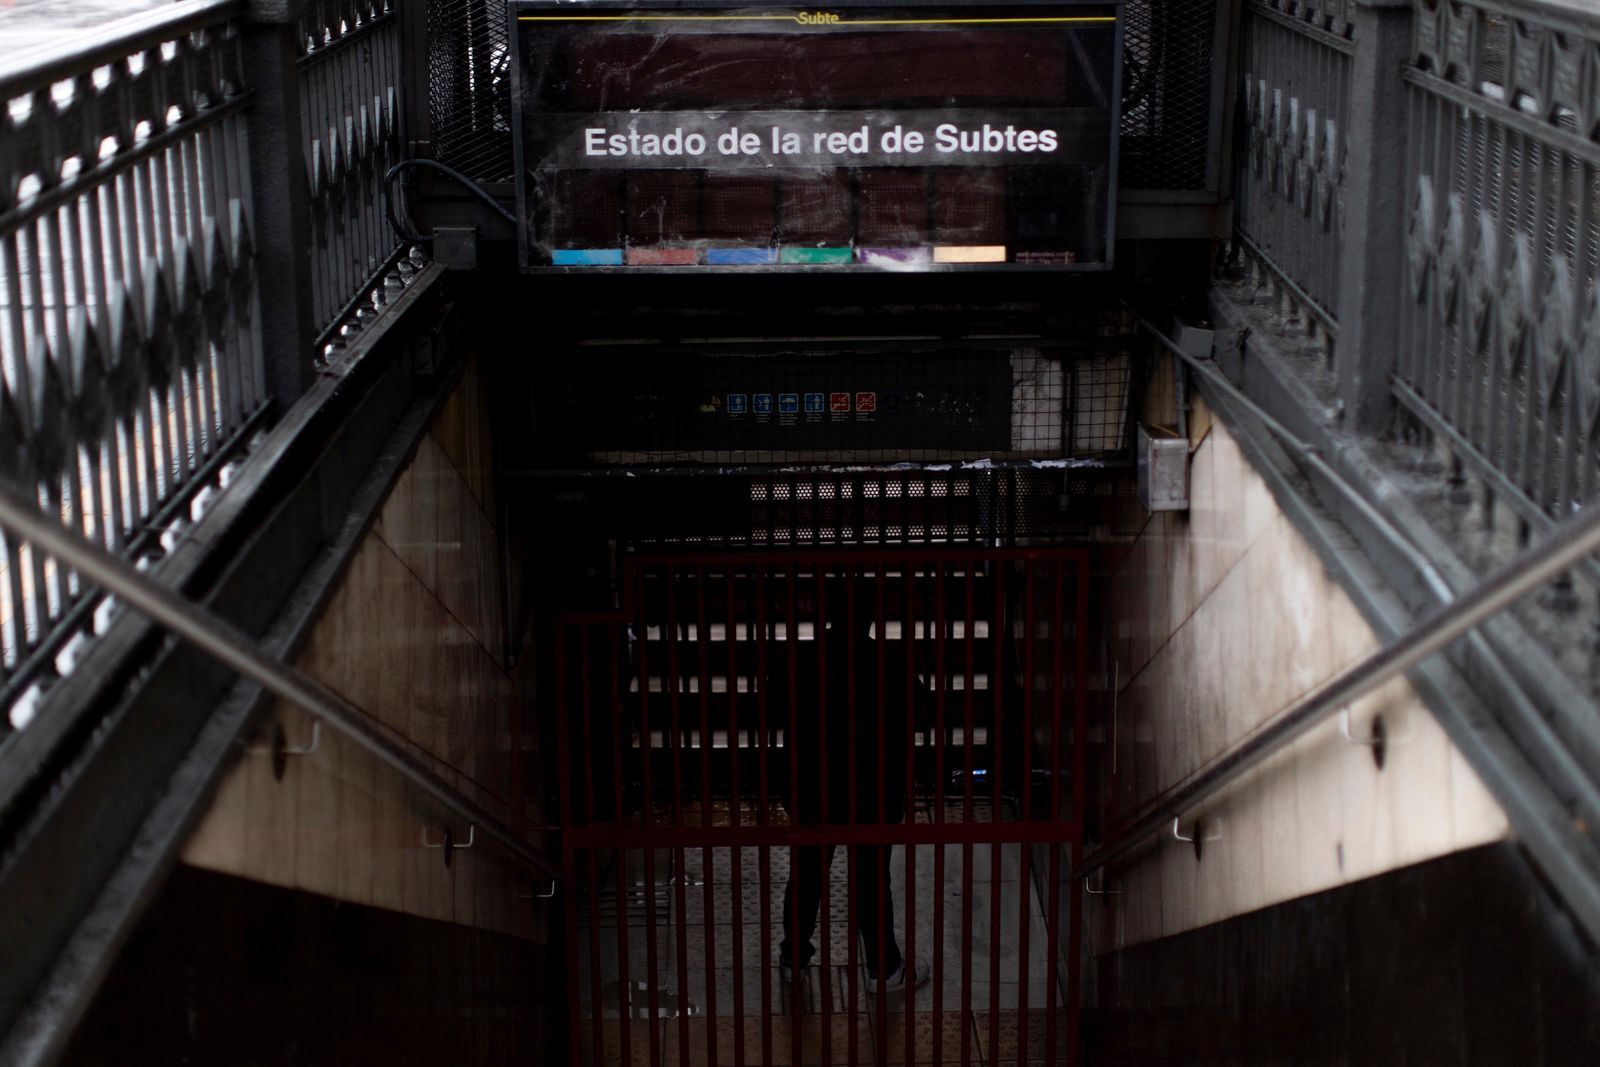 A subway employee stands in the closed entrance of the Buenos Aires's subway during a blackout, in Buenos Aires, Argentina, Sunday, June 16, 2019. Argentina and Uruguay were working frantically to return power on Sunday, after a massive power failure left large swaths of the South American countries in the dark.  (AP Photo/Tomas F. Cuesta)